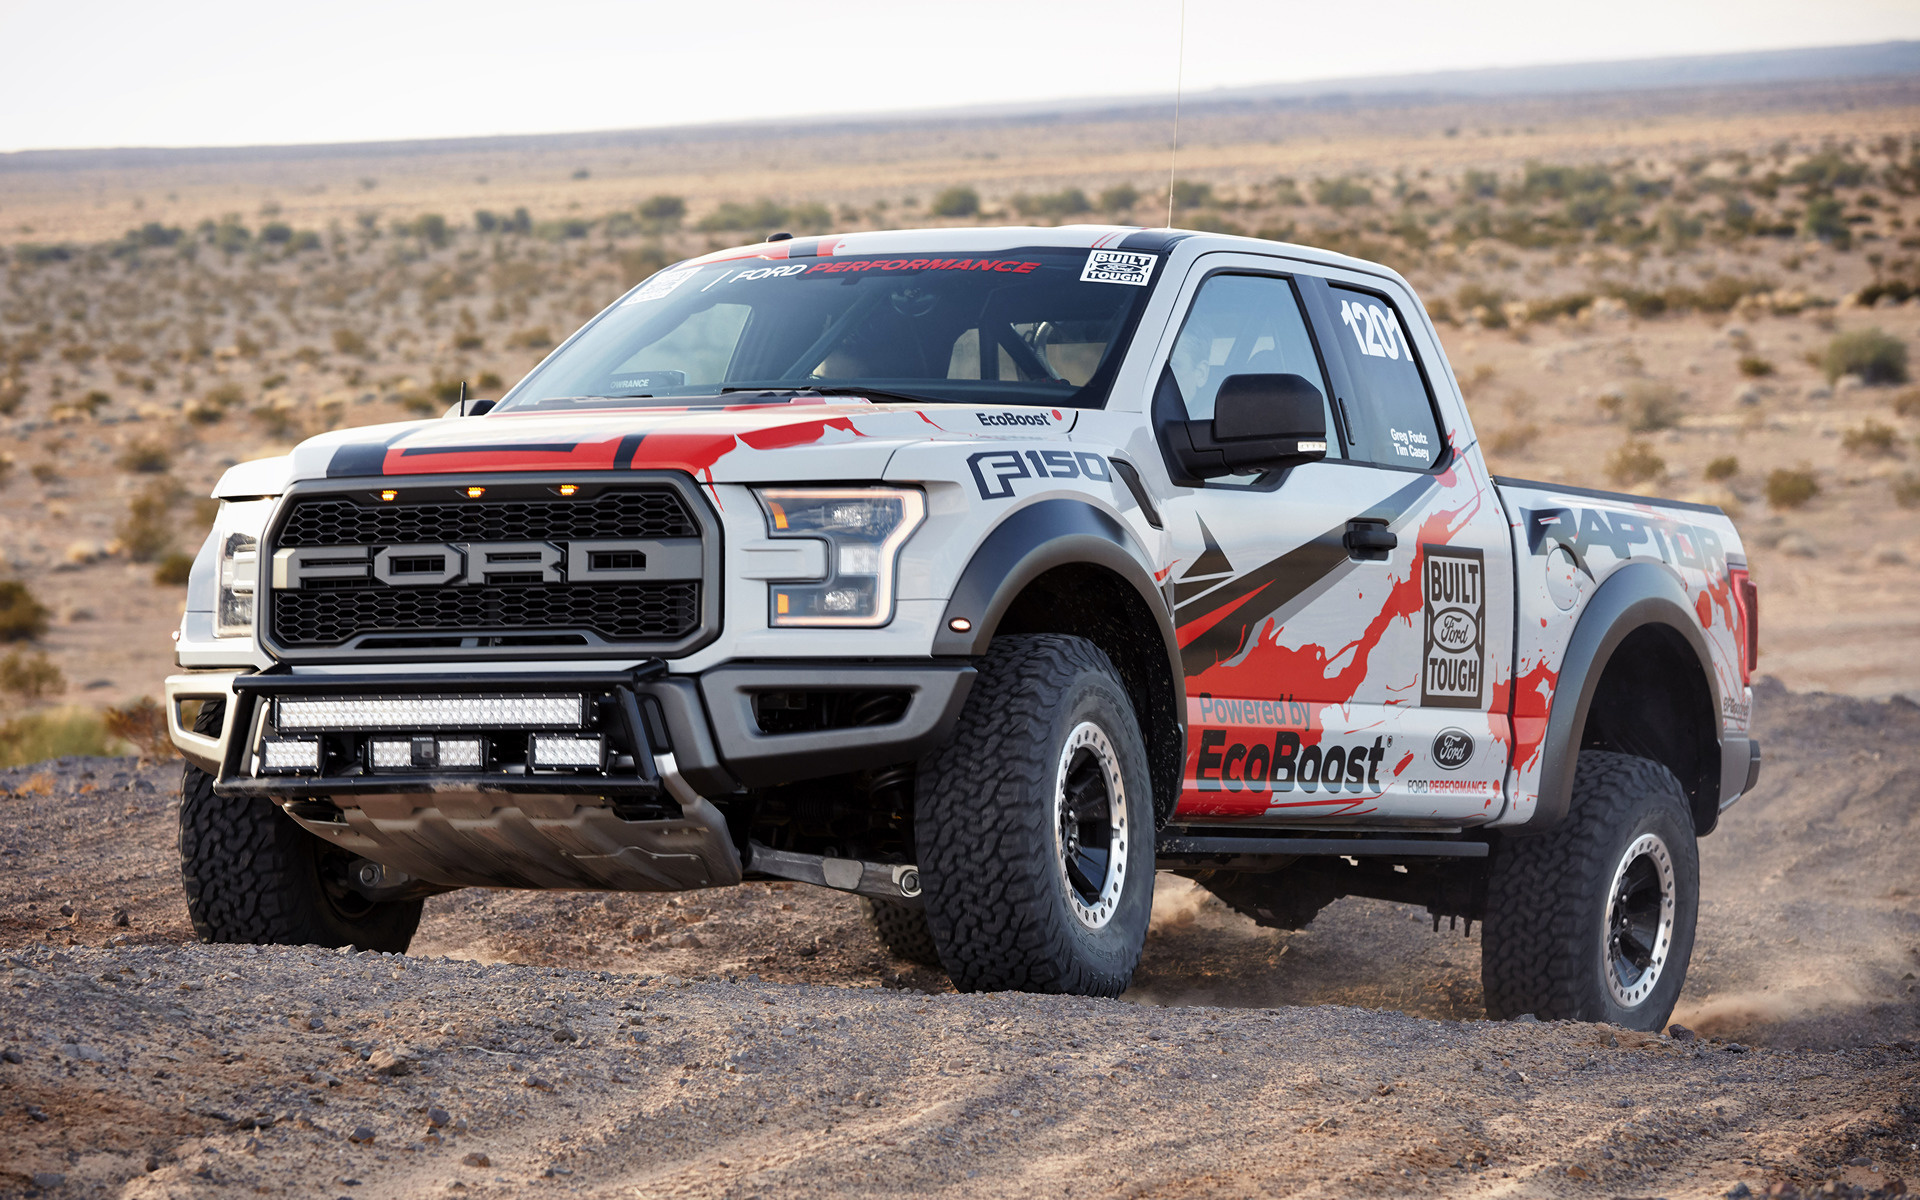 Ford F-150 Raptor Race Truck (2017) Wallpapers and HD Images - Car ...